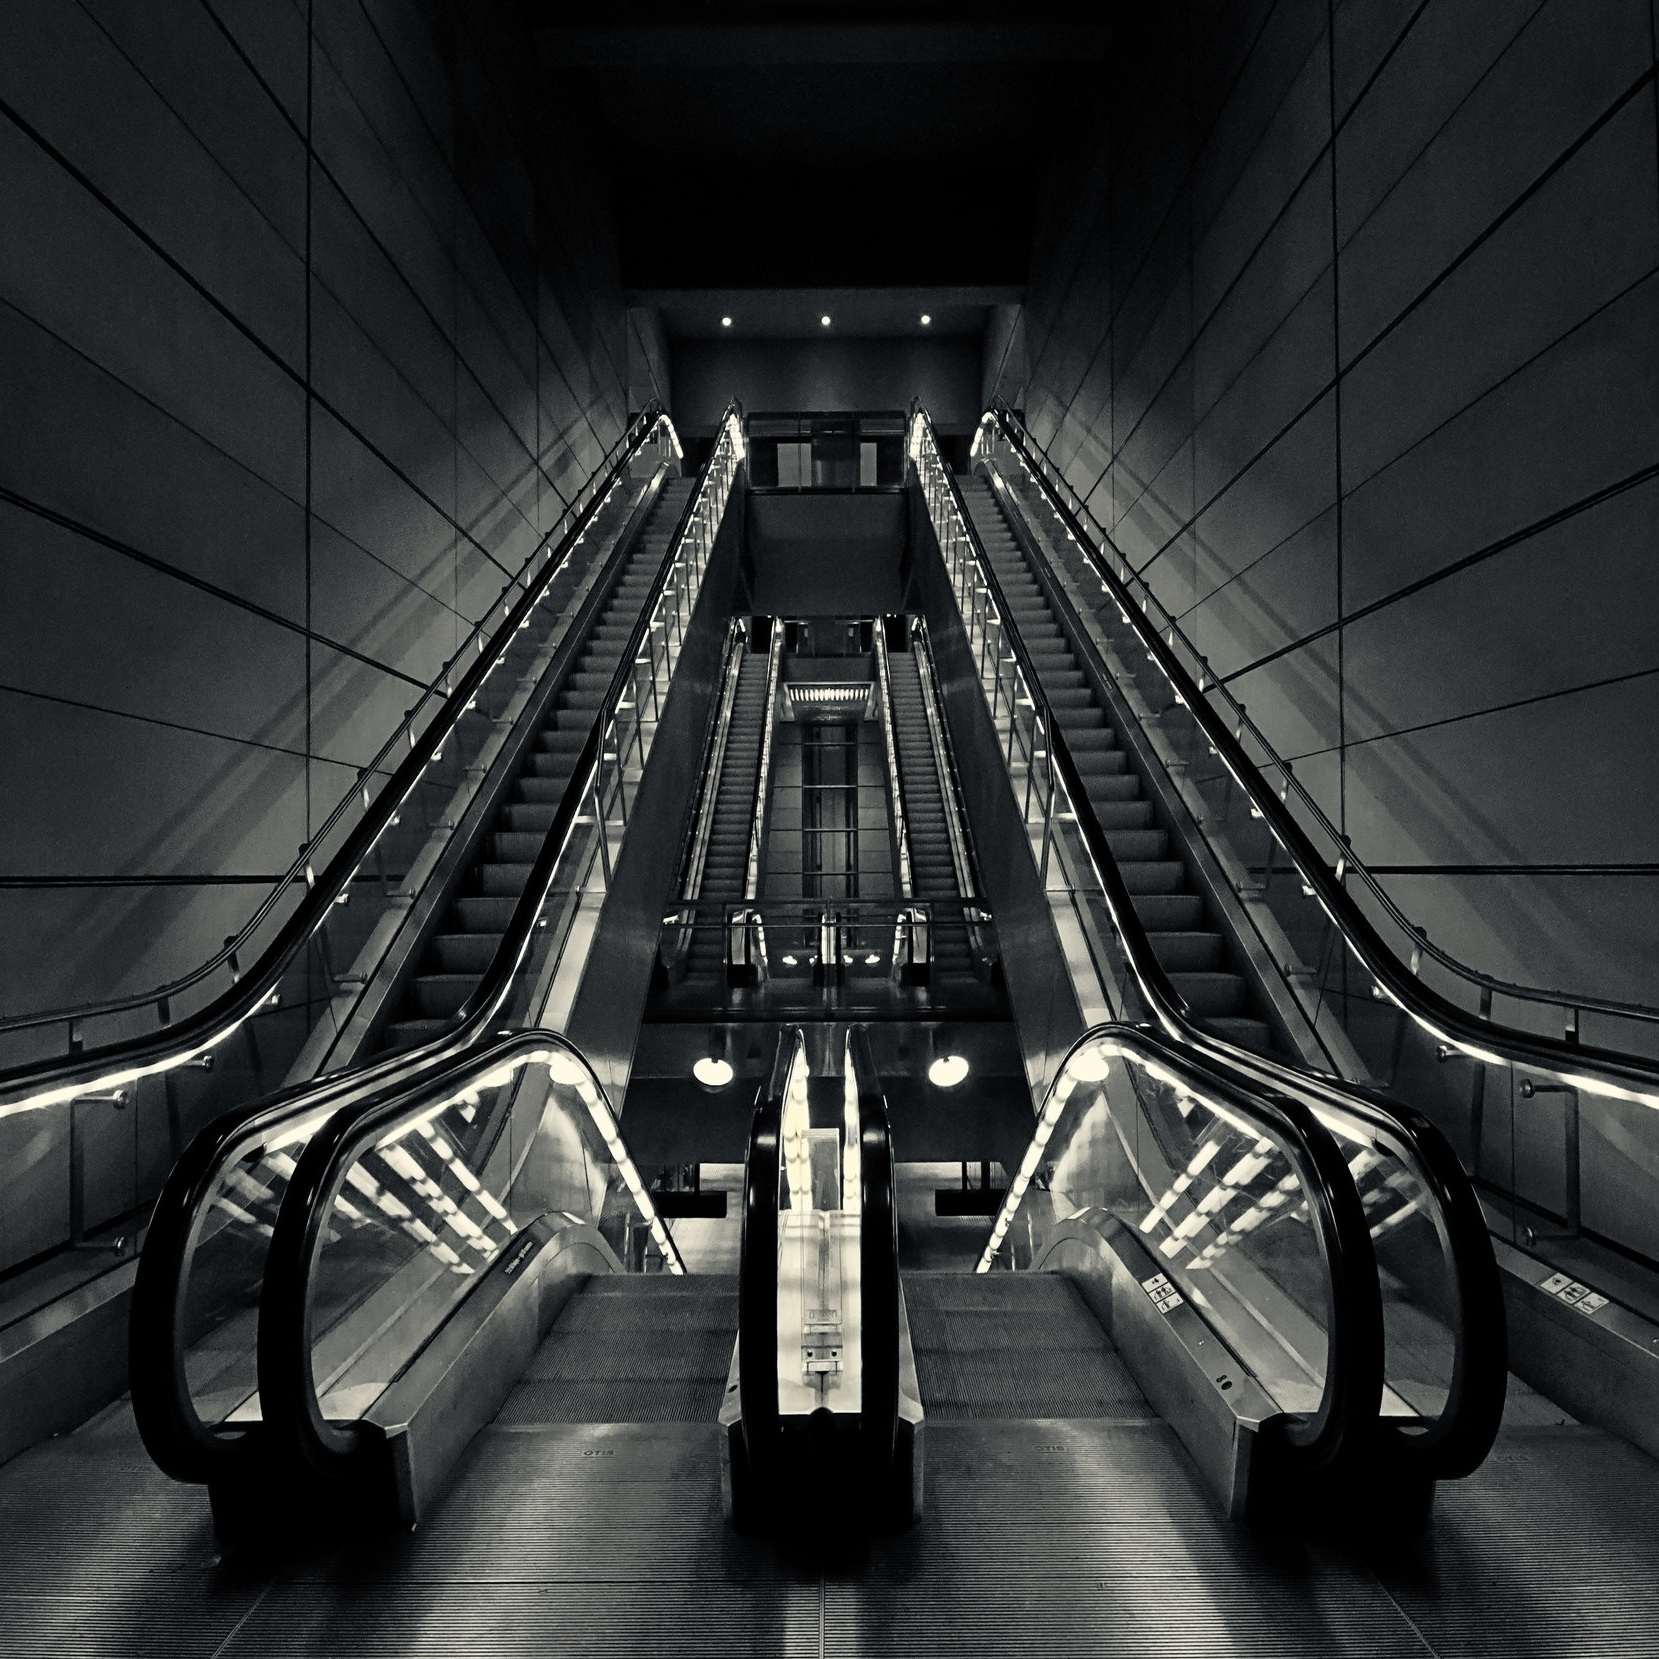 ESCALATOR STUDIES - BEAUTIFUL BLACK & WHITE ESCALATORS